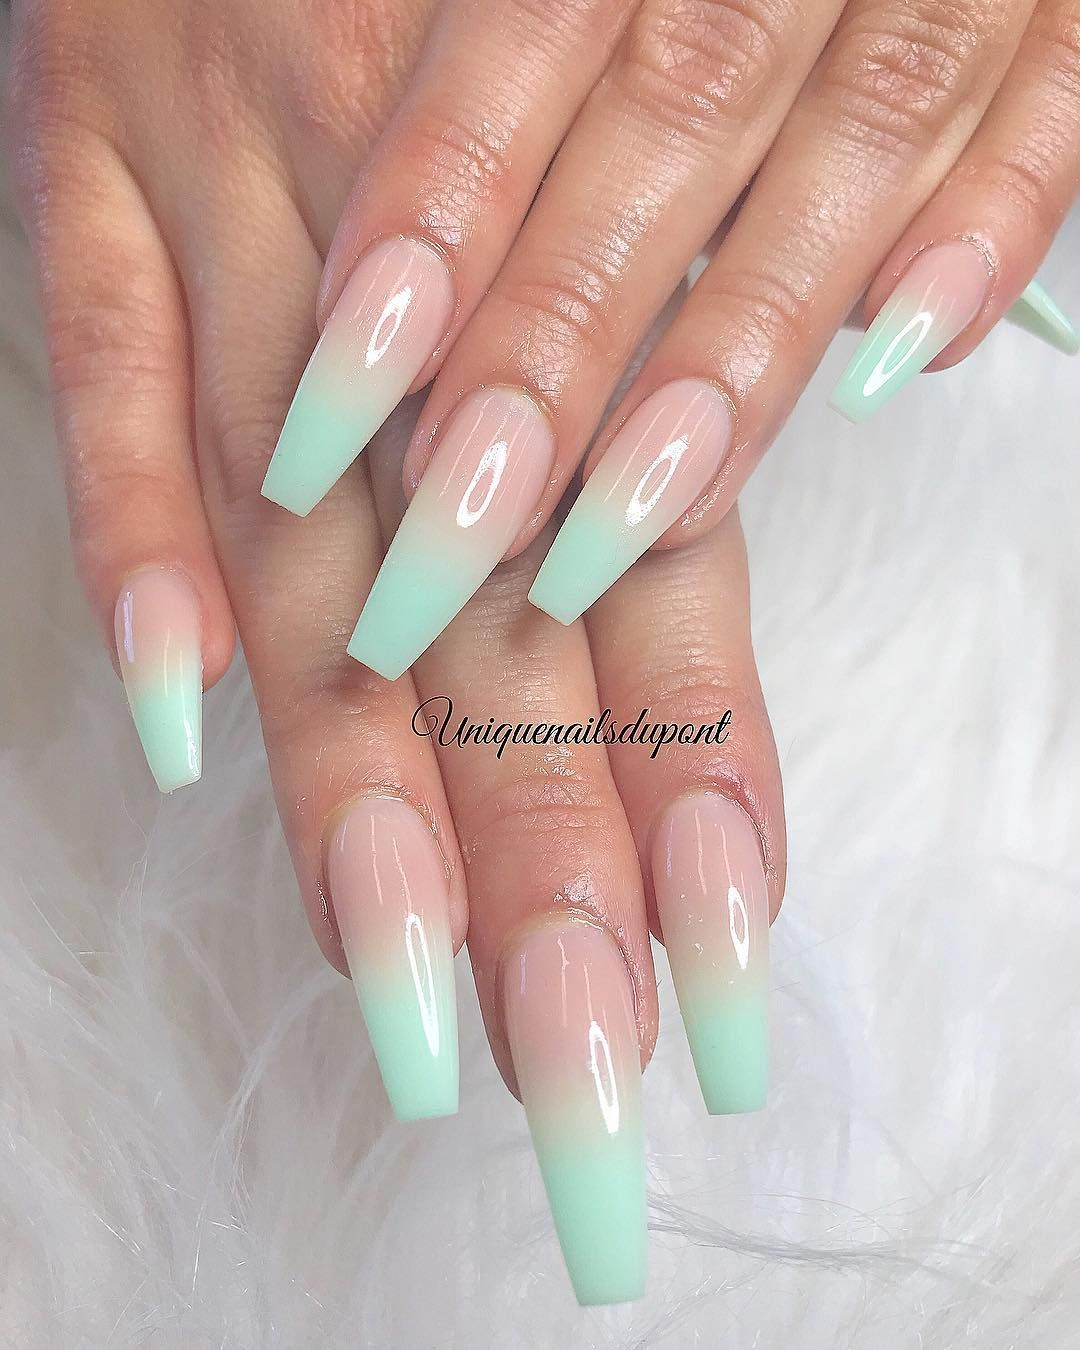 Tina Le On Instagram Thank You Summer Cjs For Your And Support Biogel Fullset With Ombre 41 Bos Coffin Nails Designs Coffin Nails Long Summer Nails Colors